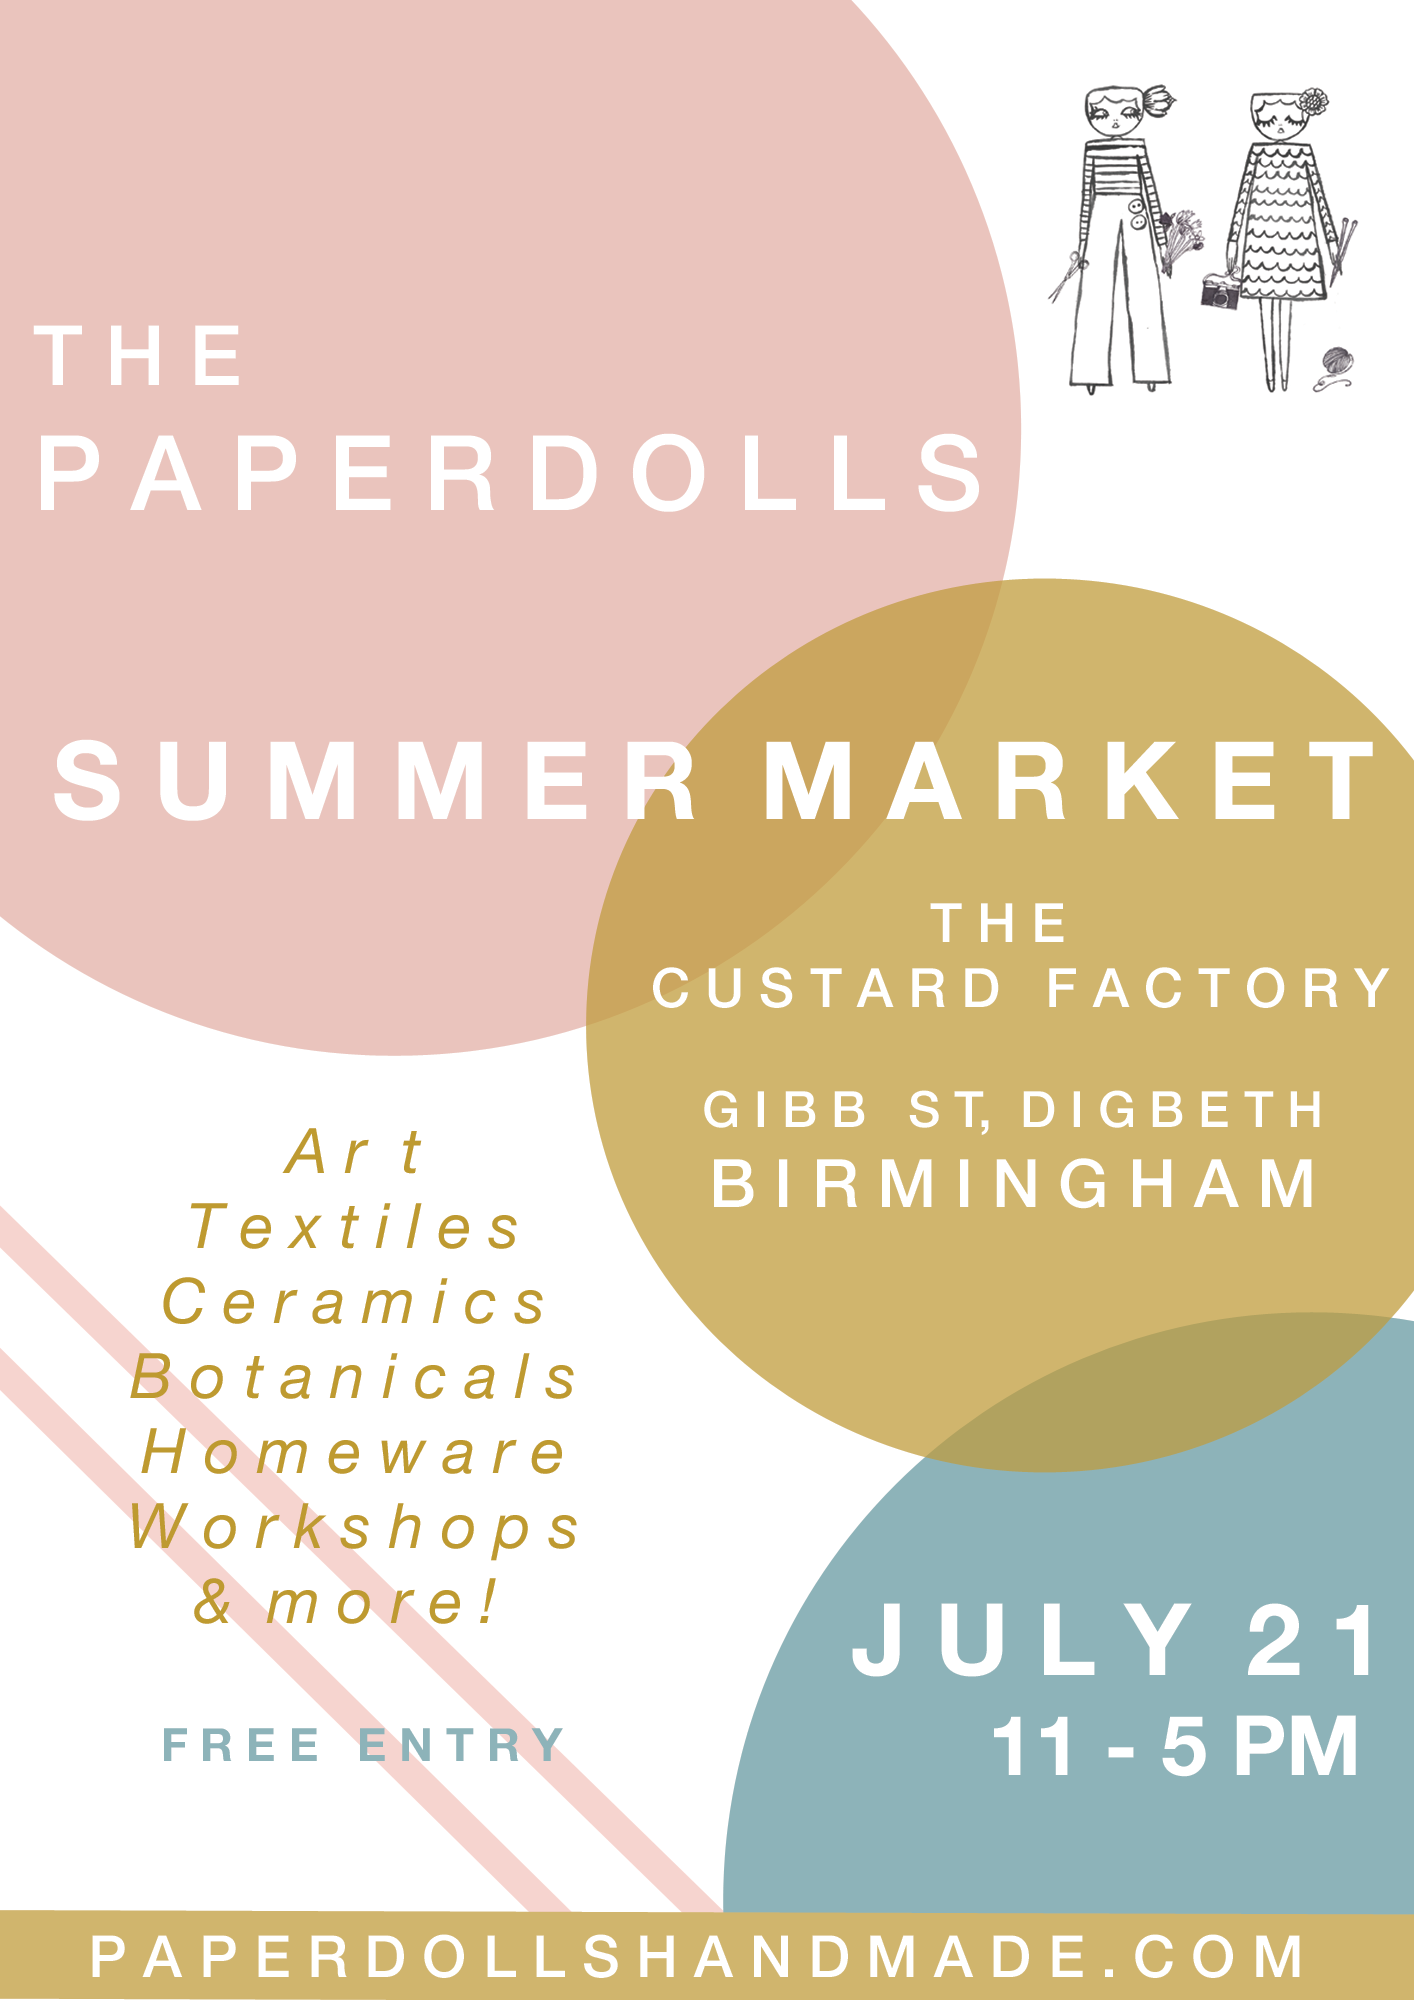 THE PAPERDOLLS SUMMER MARKET 2018